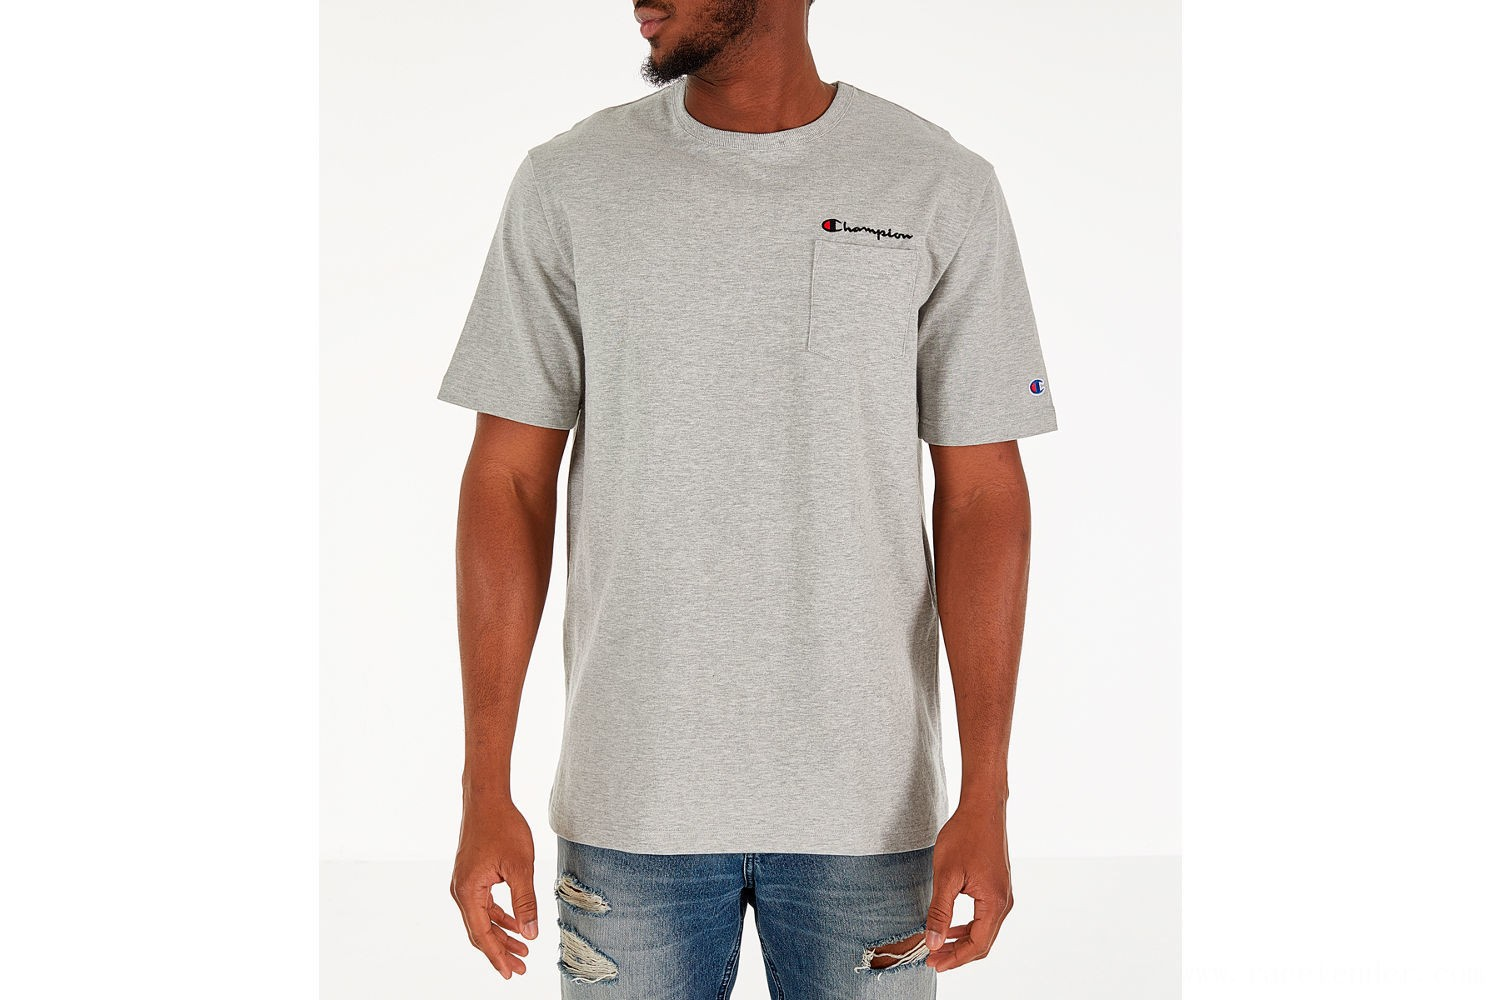 Champion Men's Heritage Pocket T-Shirt - Grey